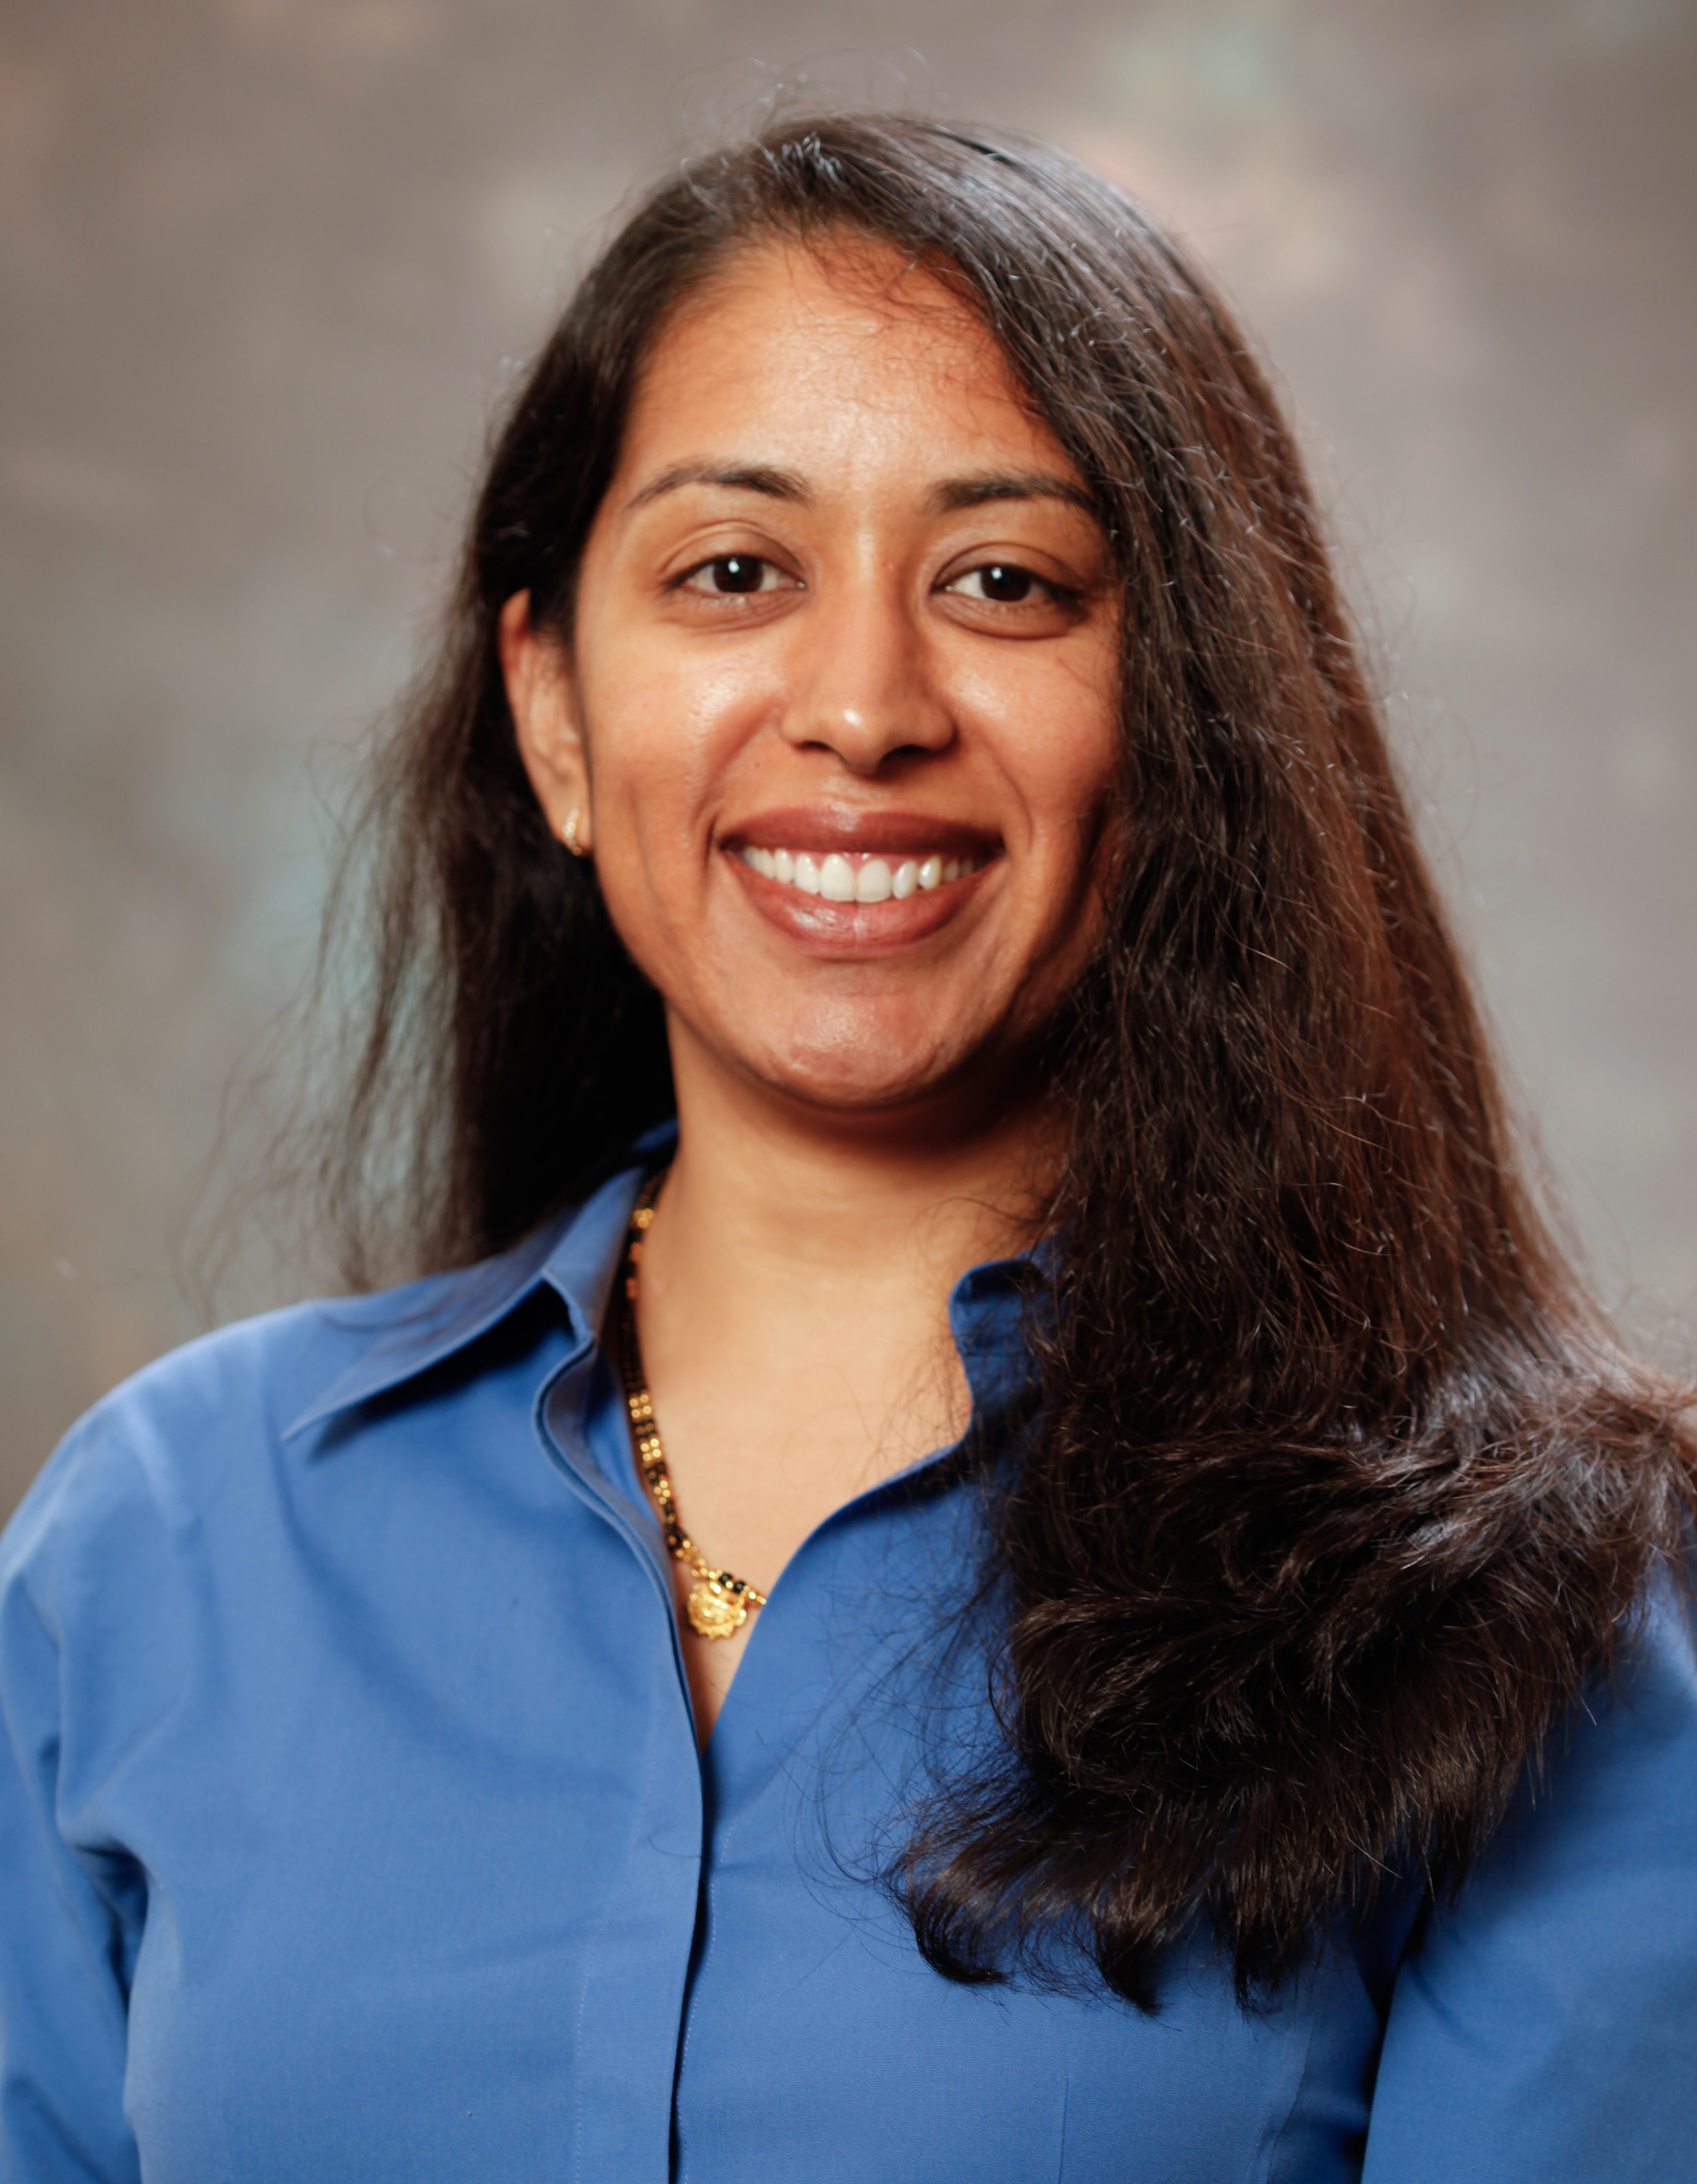 Sheela Shenoi, MD - Current position: Assistant Professor of Medicine (AIDS); Assistant Professor, Yale UniversityWebsites:Yale ProfileTF CARES